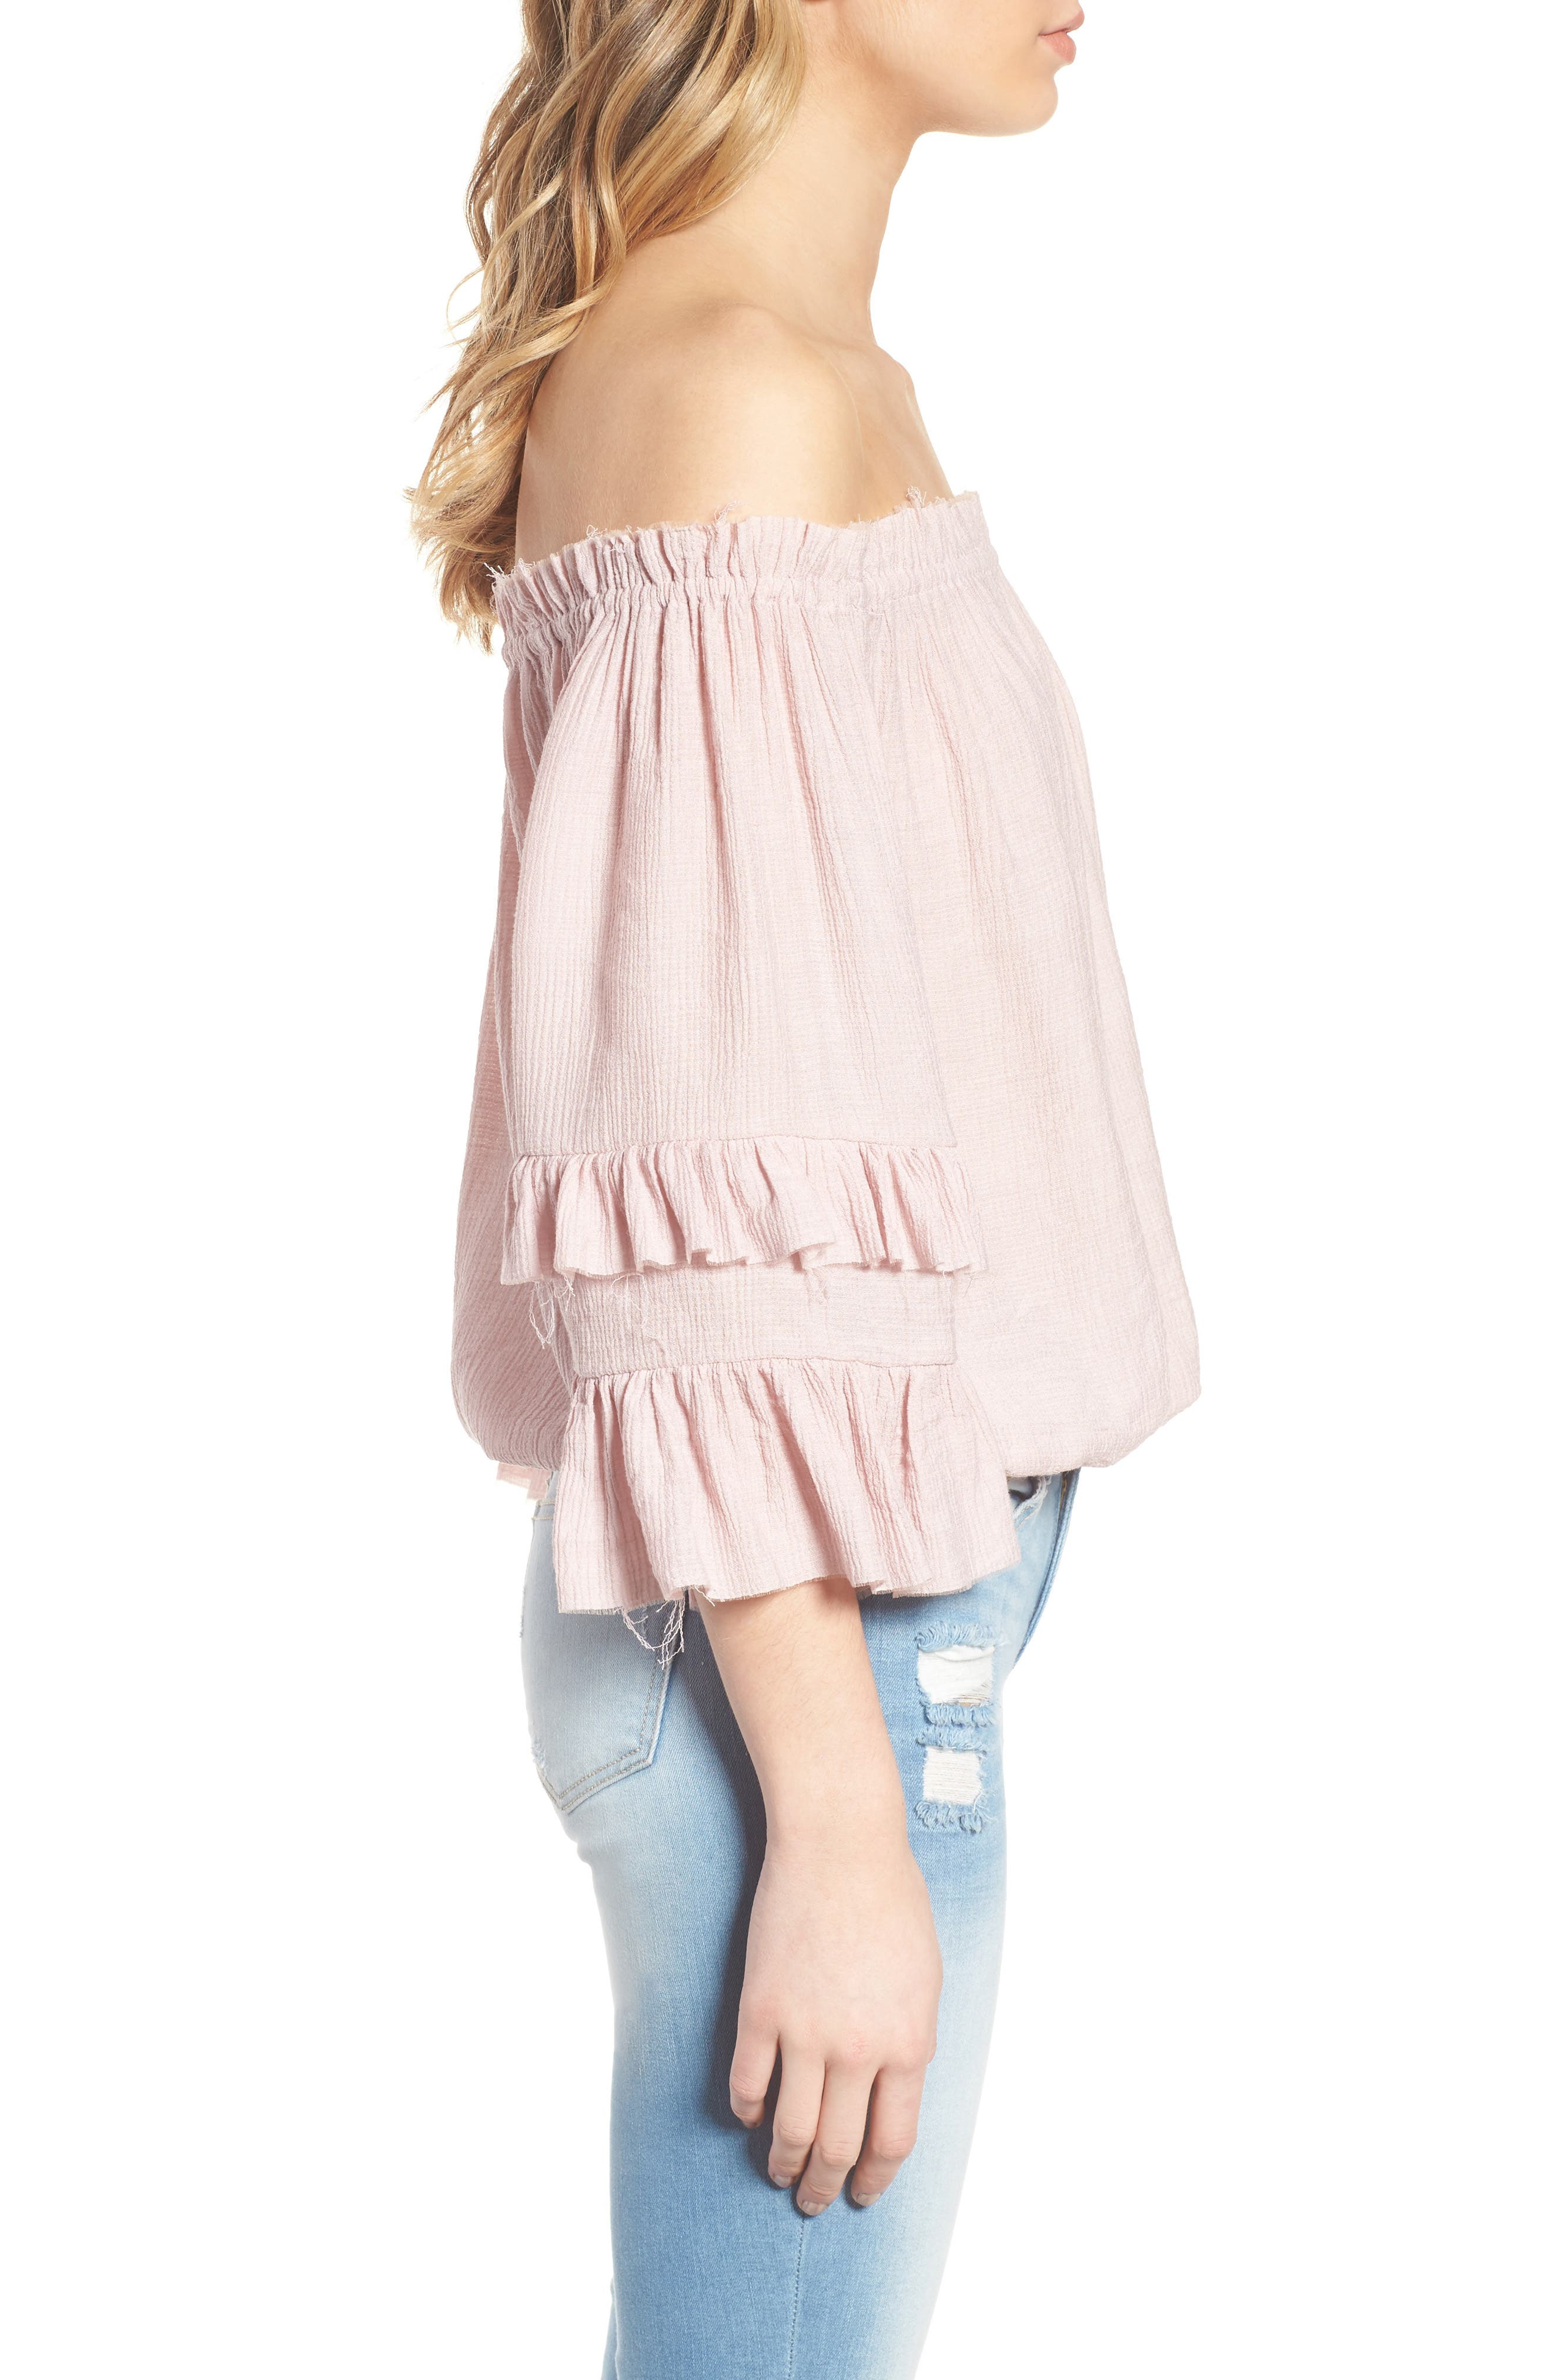 KNOW ONE CARES,                             Tiered Off the Shoulder Top,                             Alternate thumbnail 3, color,                             685